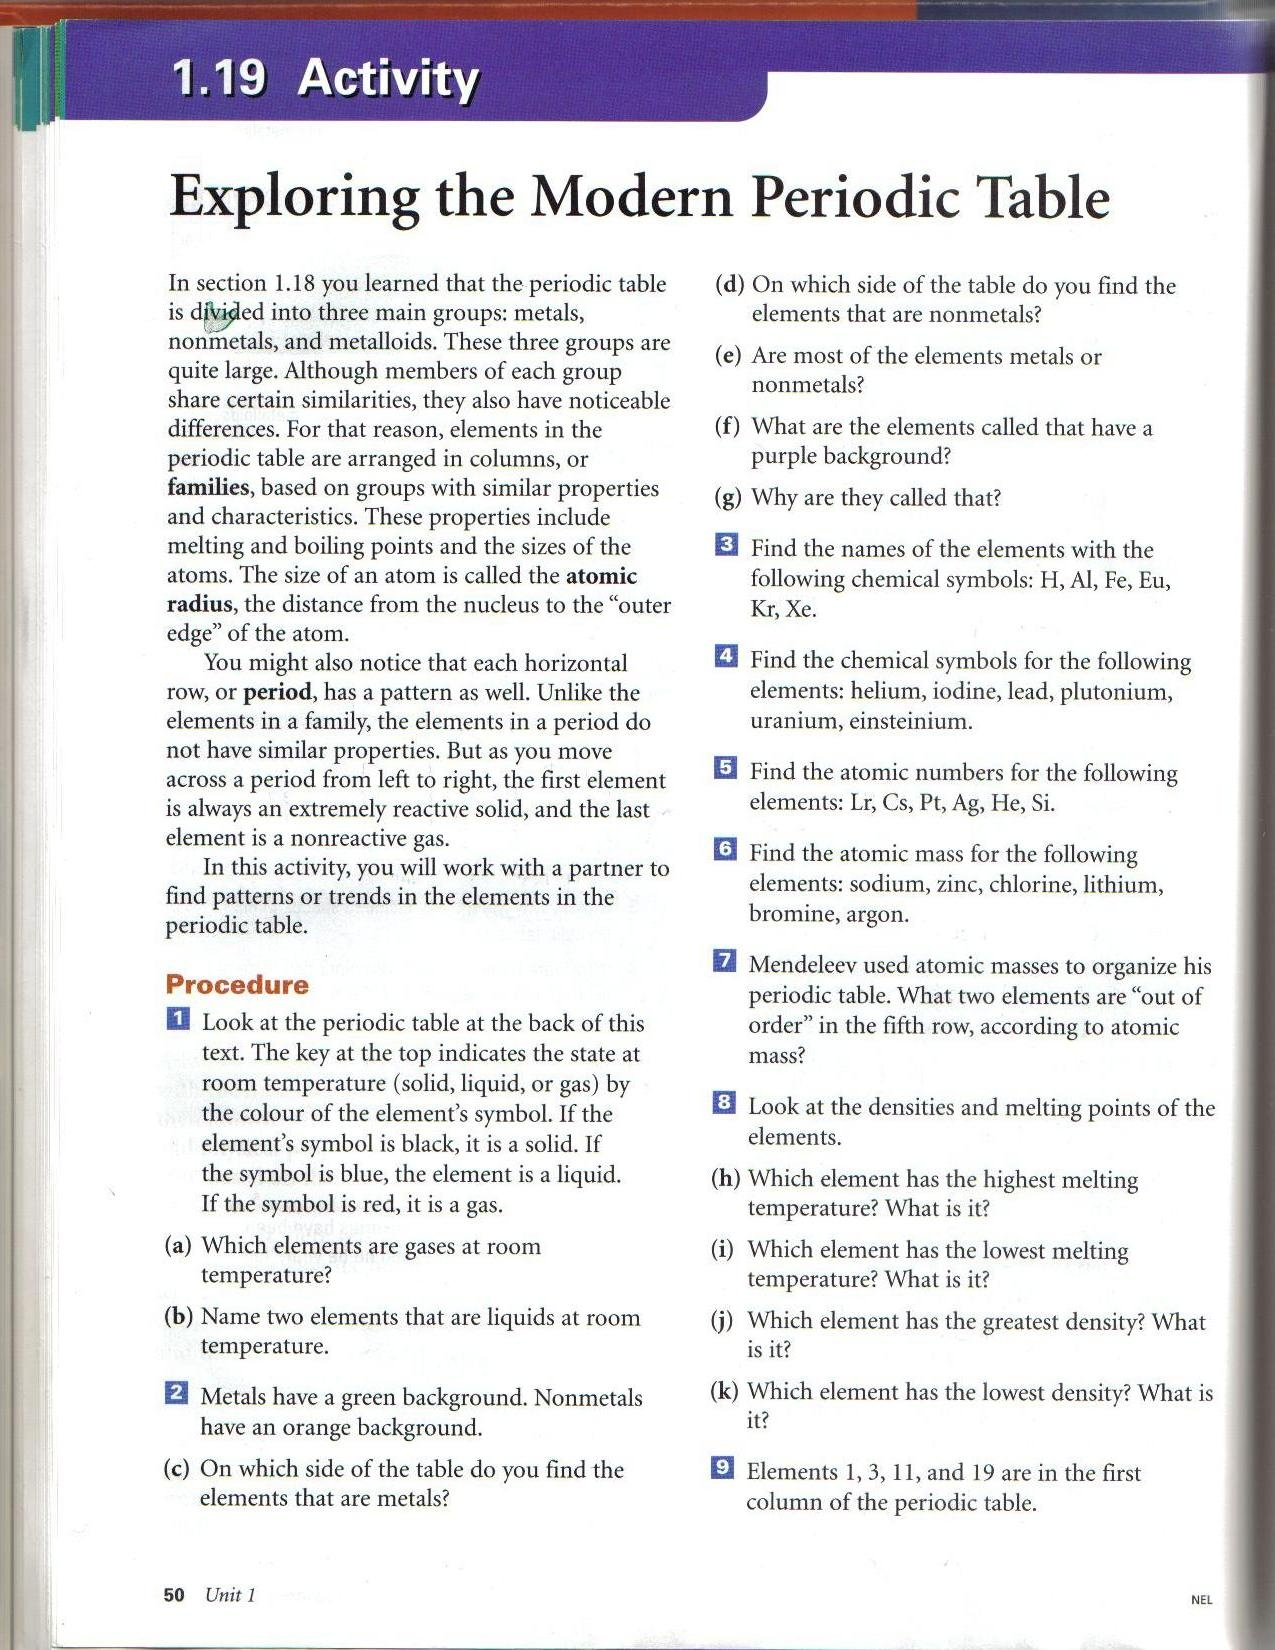 Exploring The Periodic Table Worksheet Answers